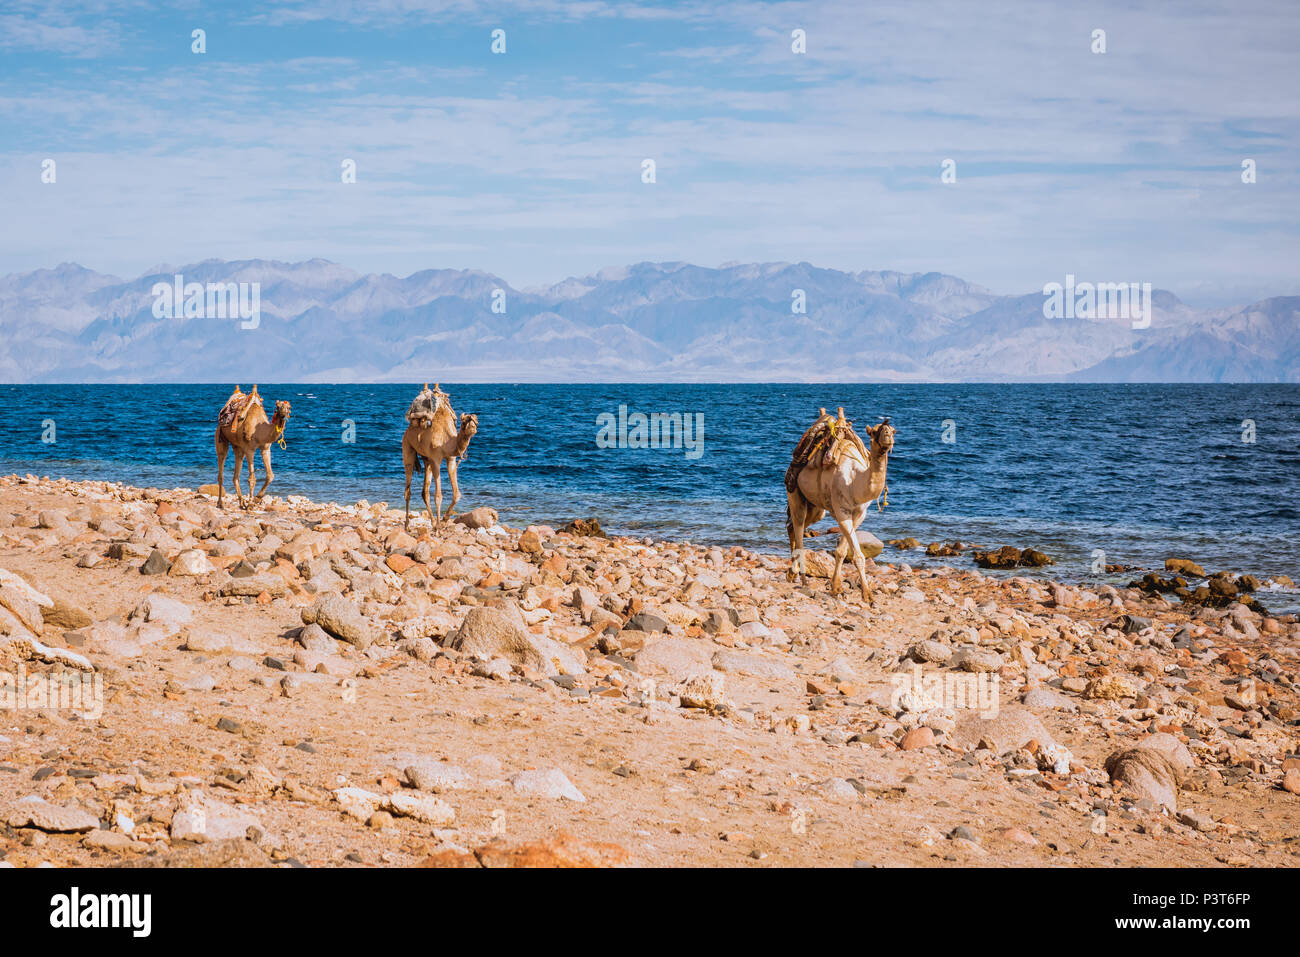 Camels on beach coast Sinai, Egypt, Africa - Stock Image